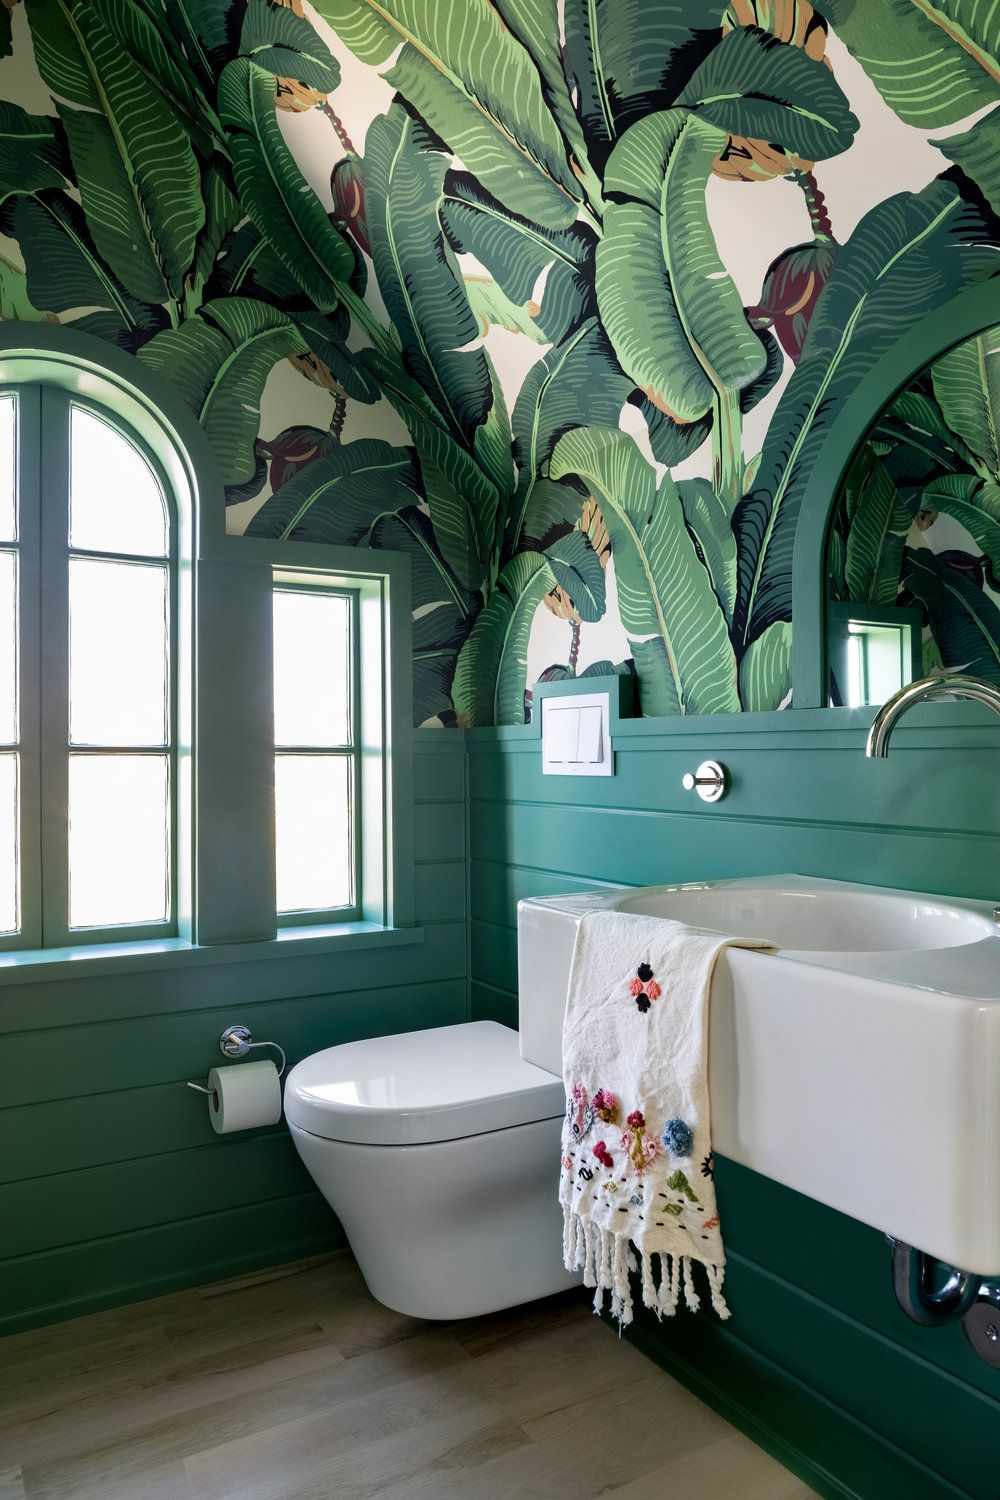 Bathroom Paint Ideas 19 Colour Schemes To Brighten Up Your Bathroom Space Real Homes